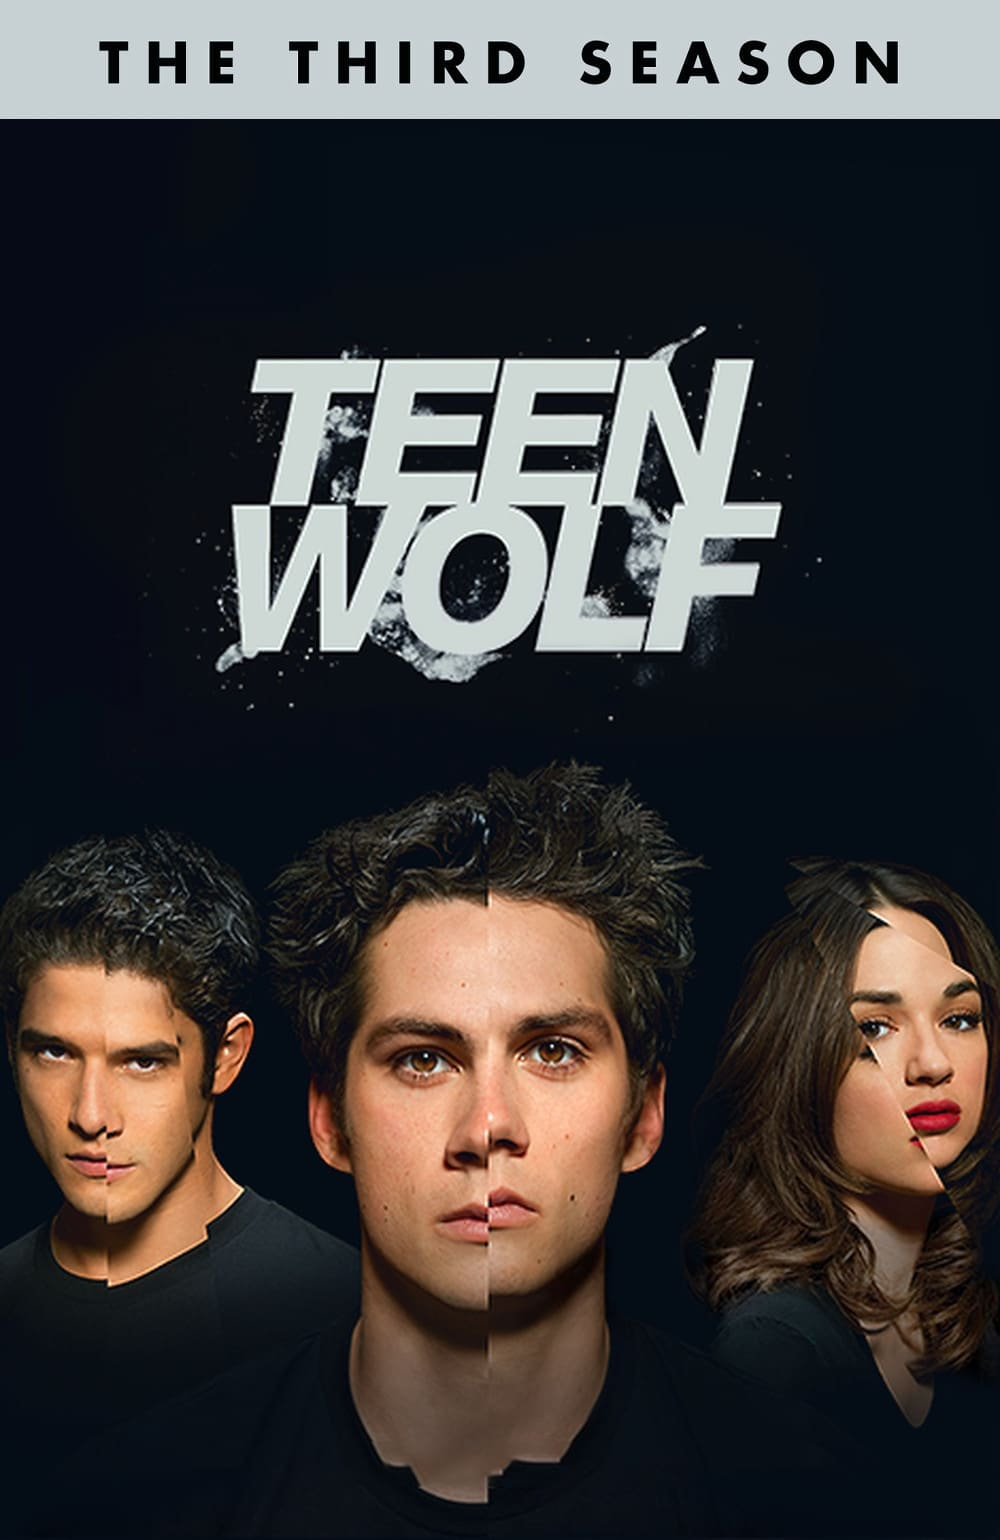 Teen Wolf Season 3 Episode 1